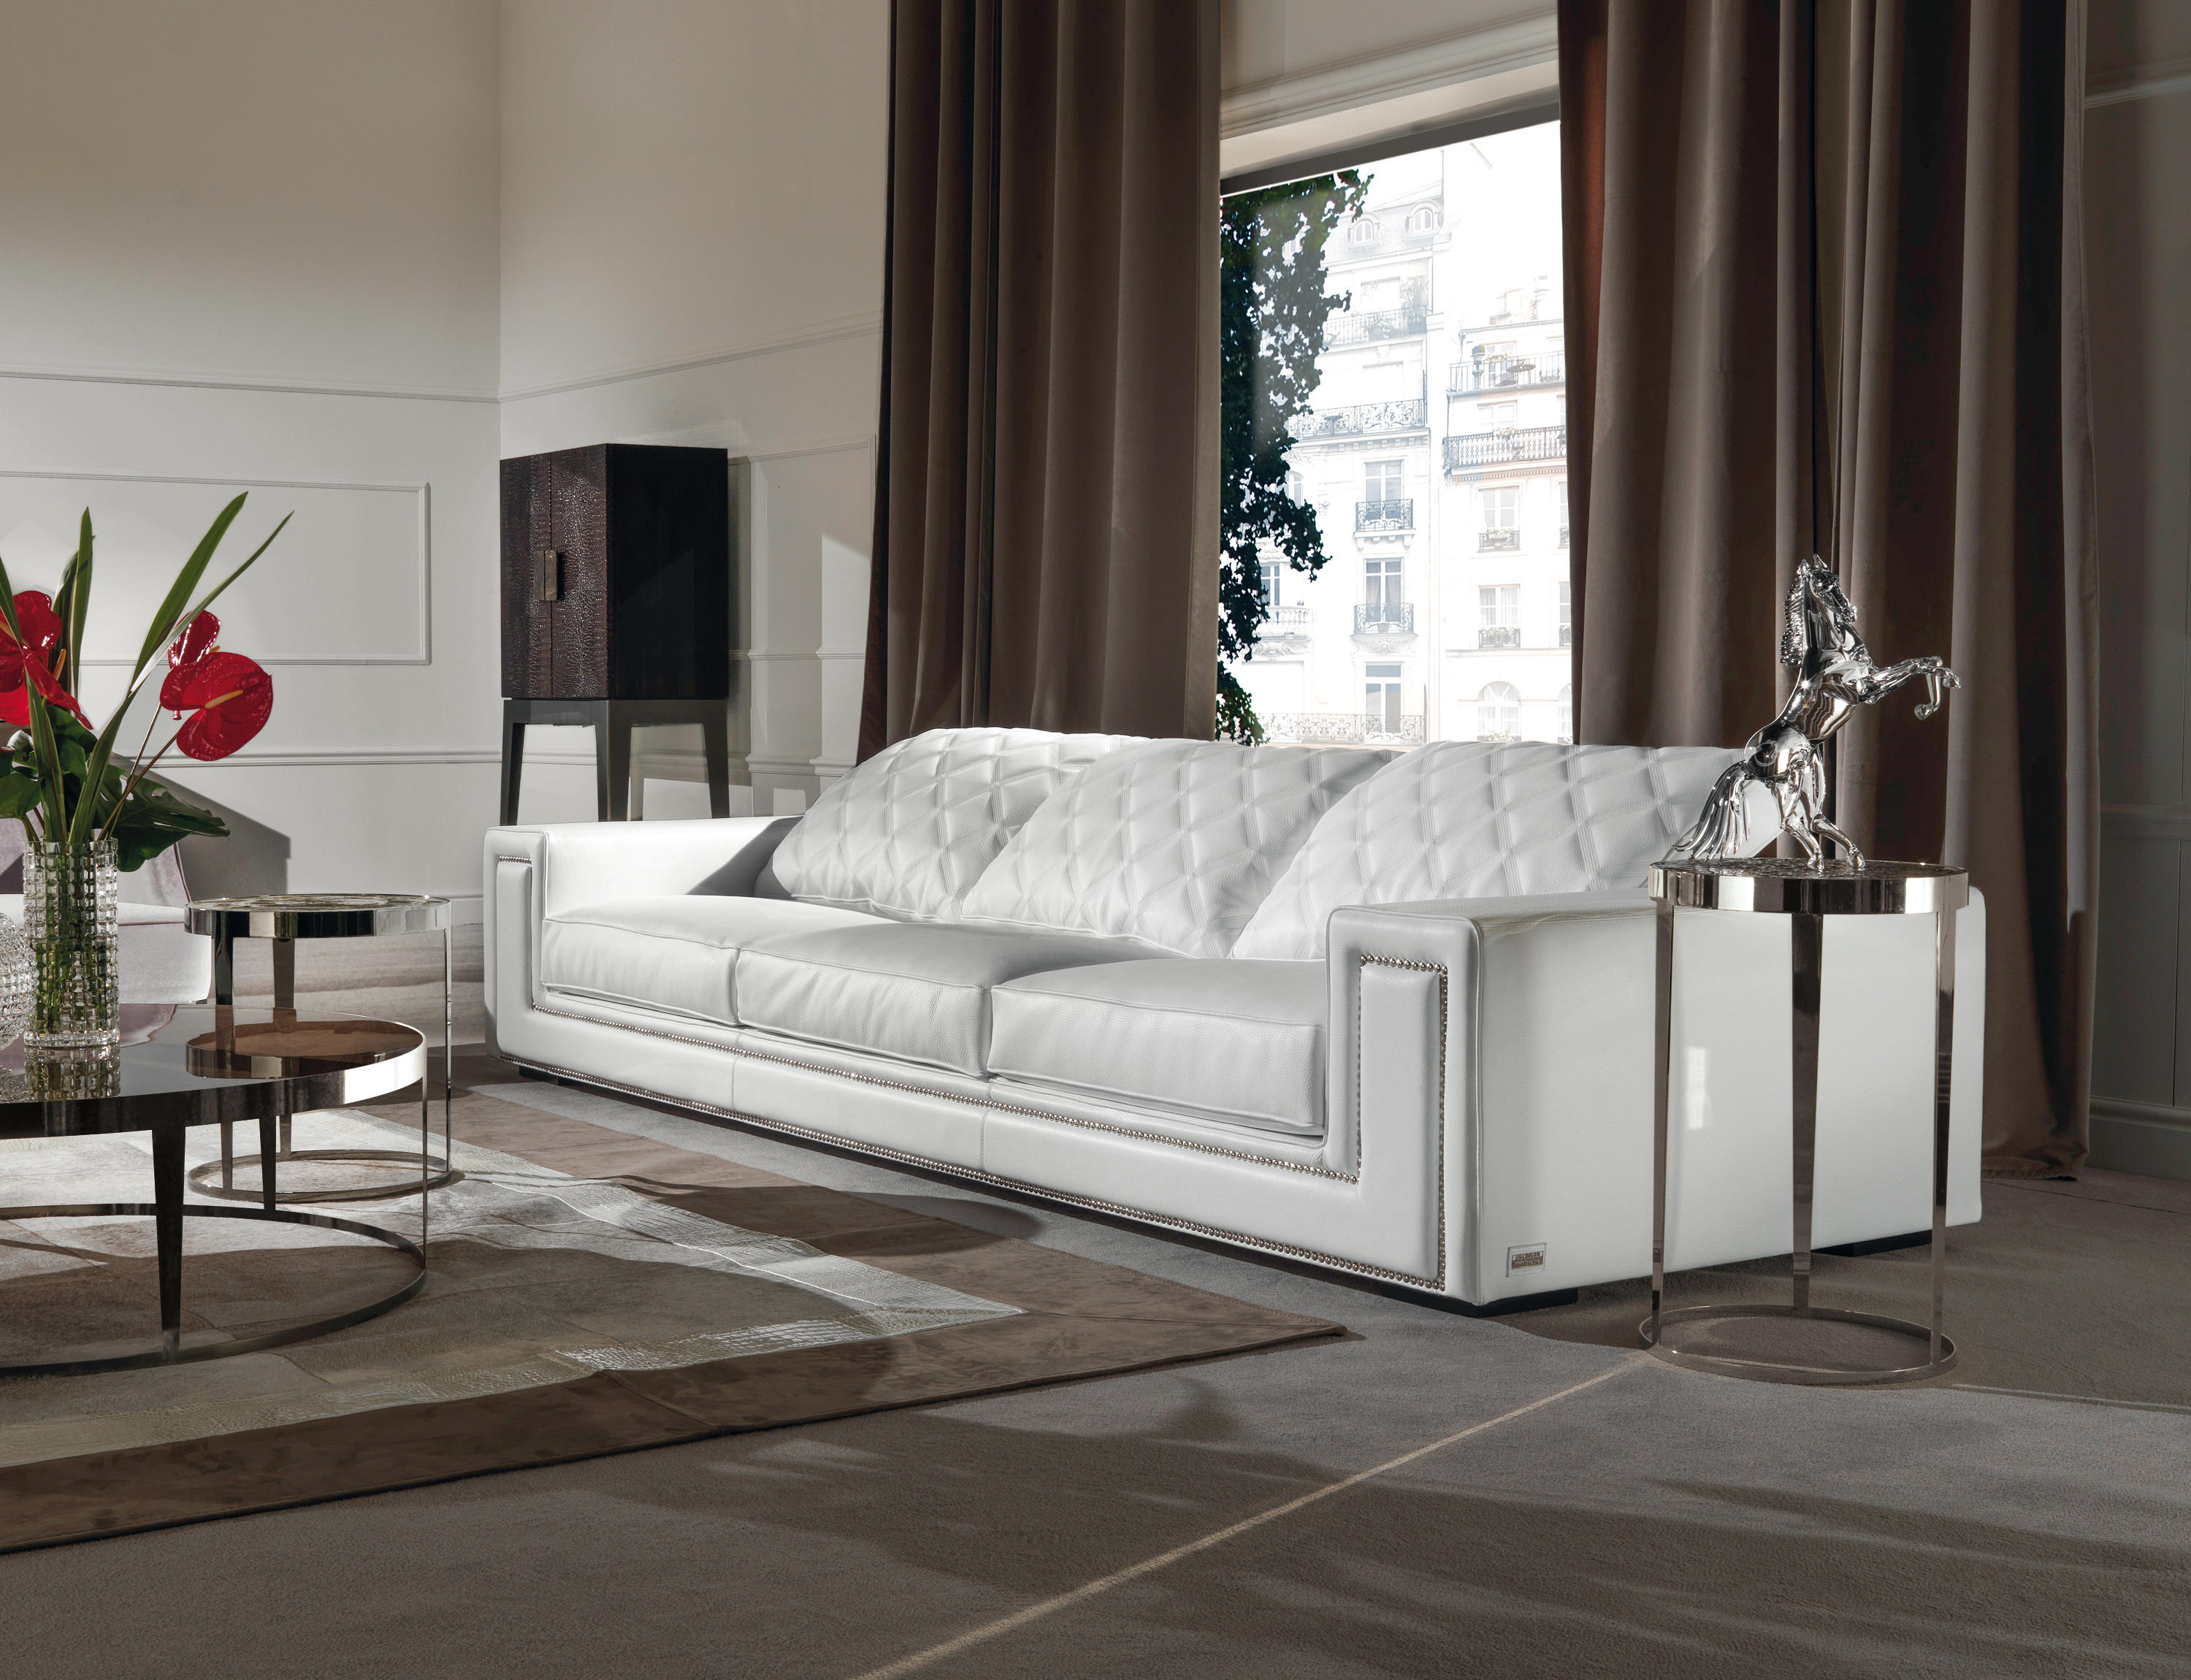 Attirant Helmut By Longhi S.p.a. | Sofas ...